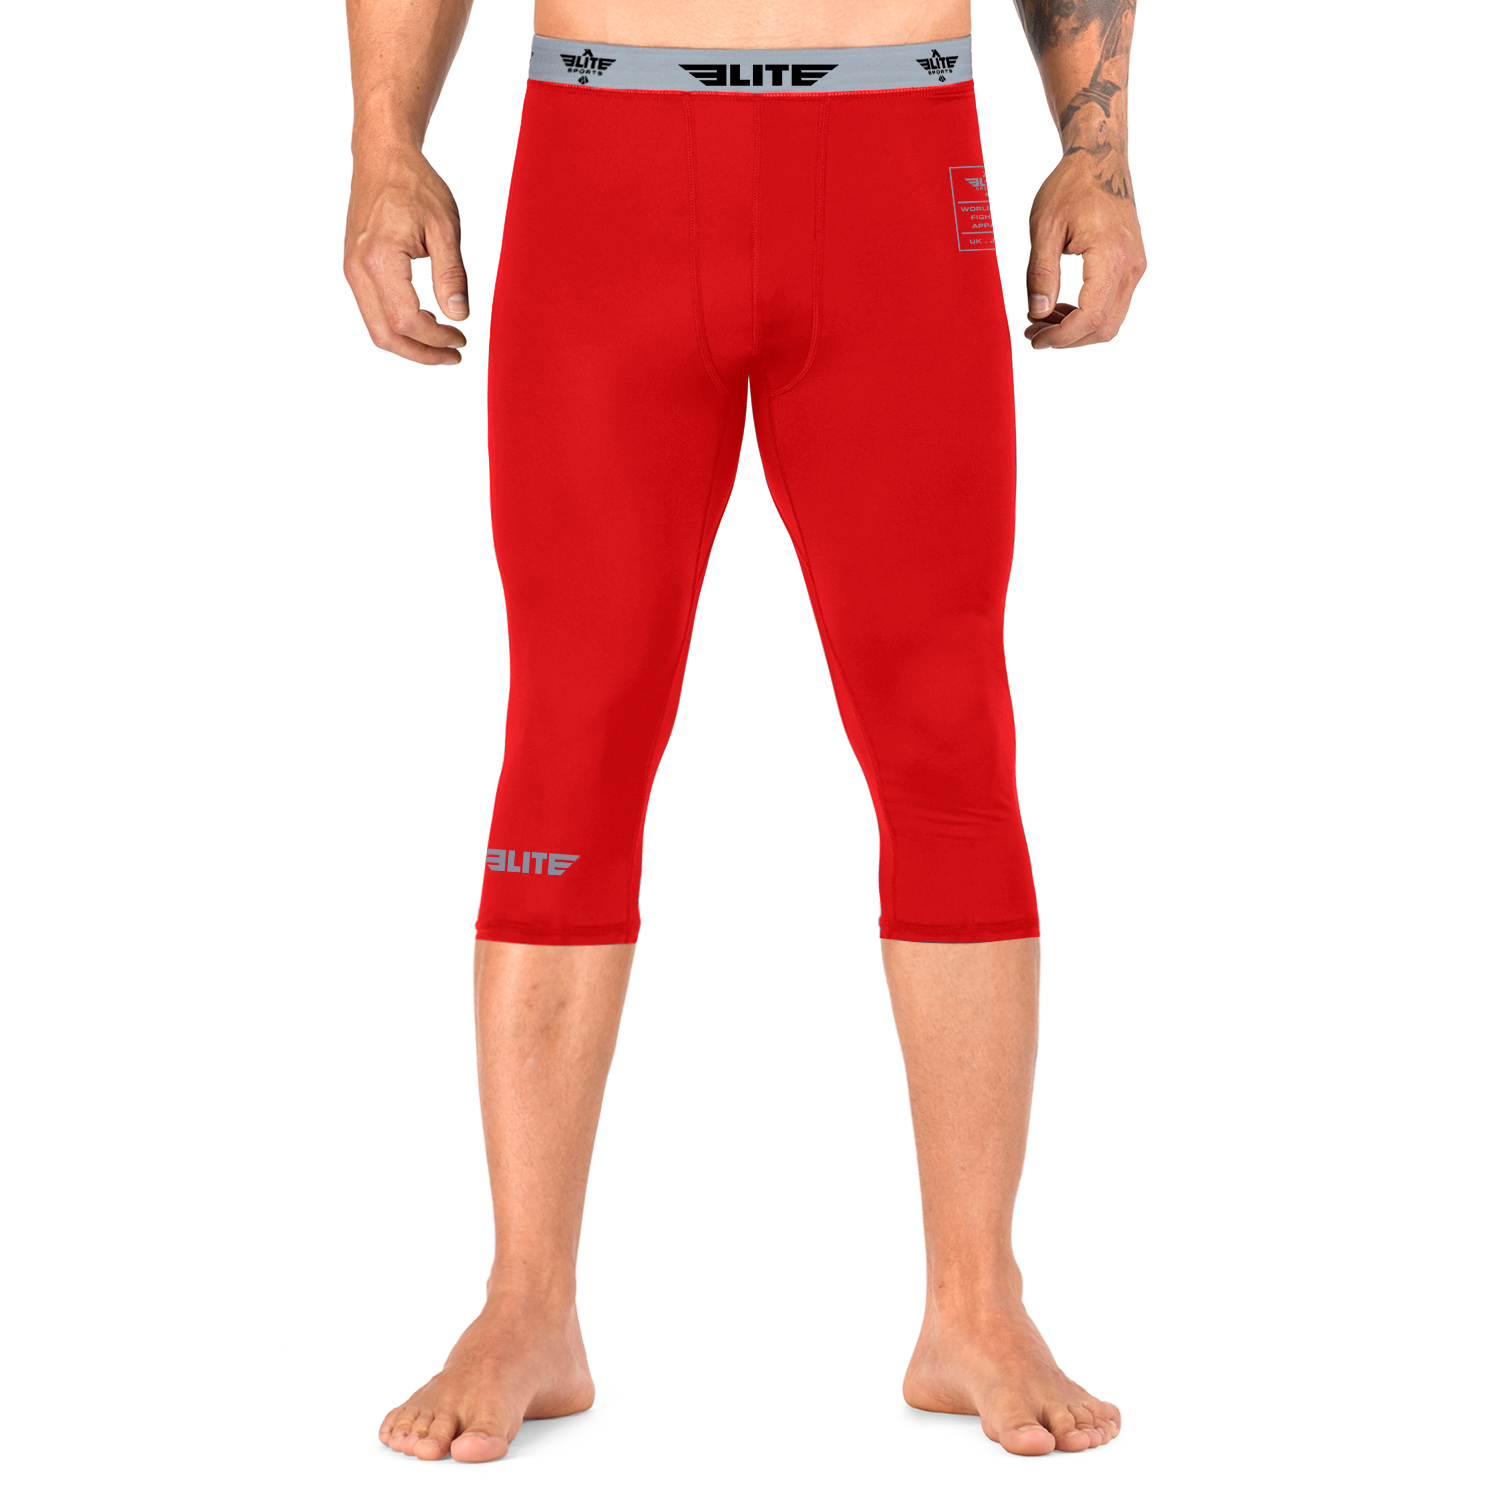 Elite Sports Three Quarter Red Compression Boxing Spat Pants